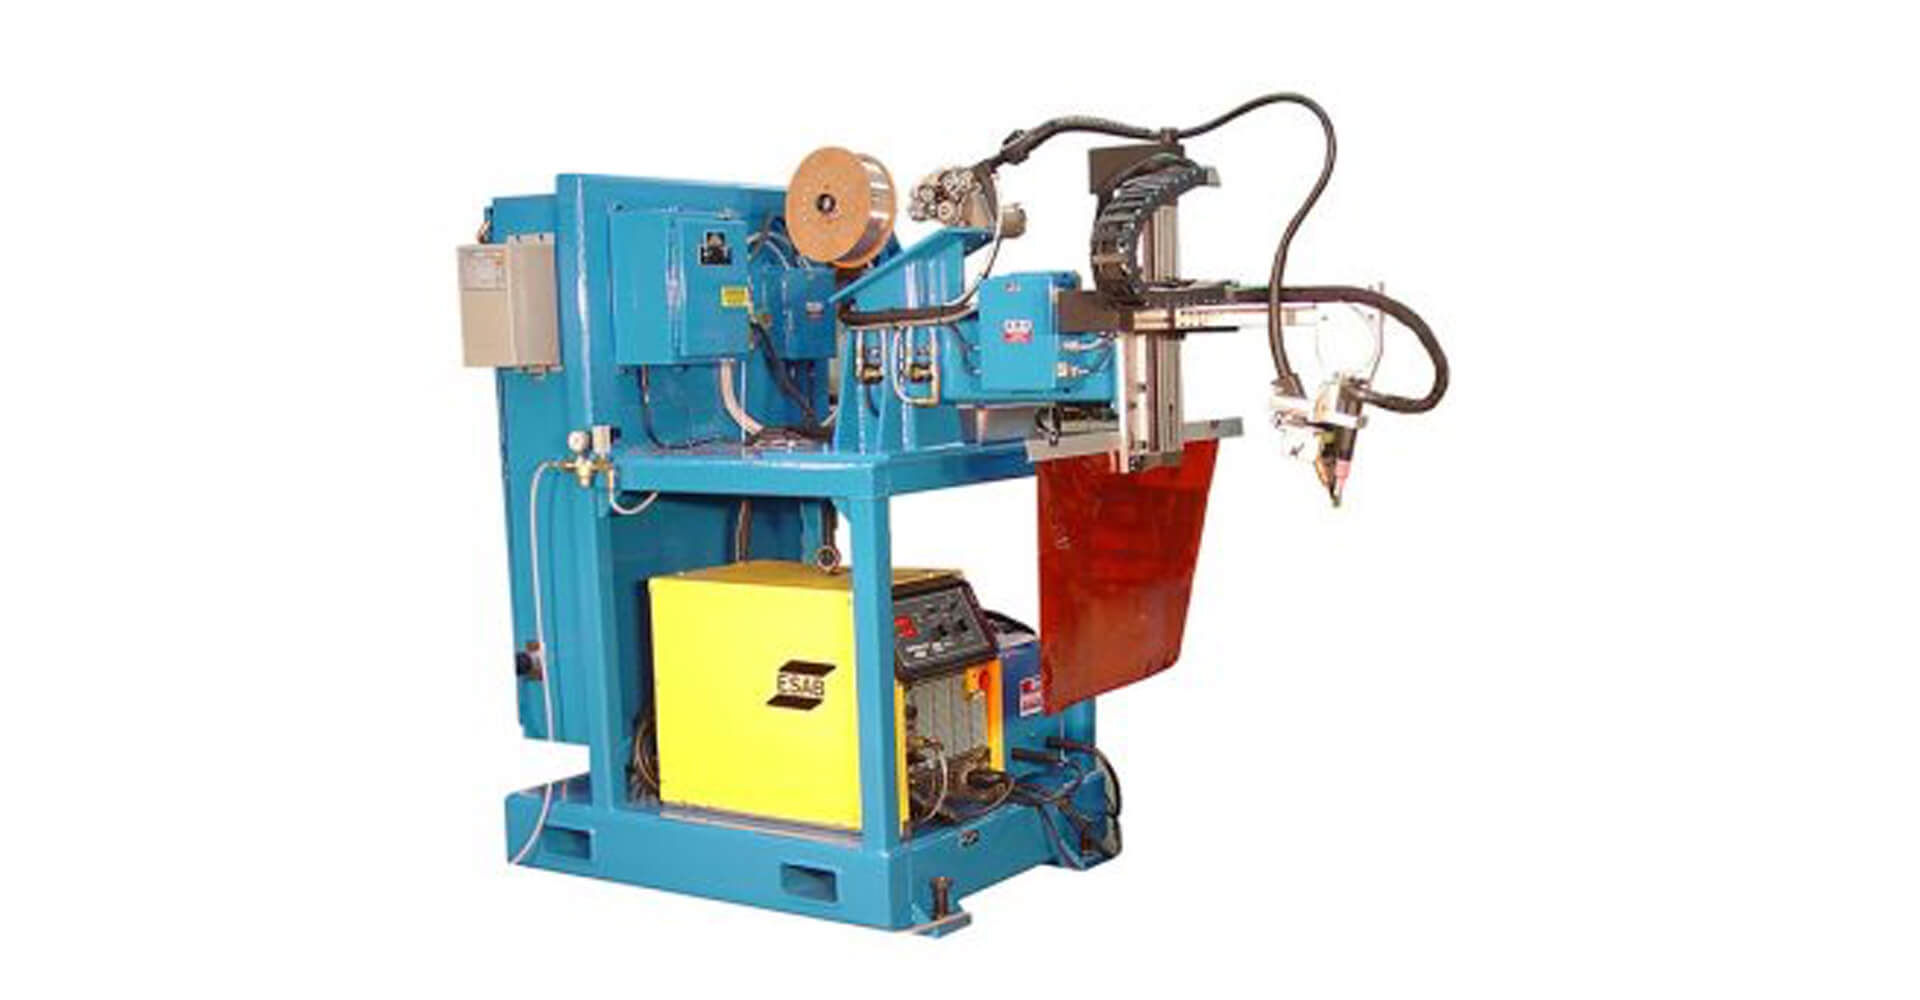 arc-10g_plc_gtaw_Welding Systems